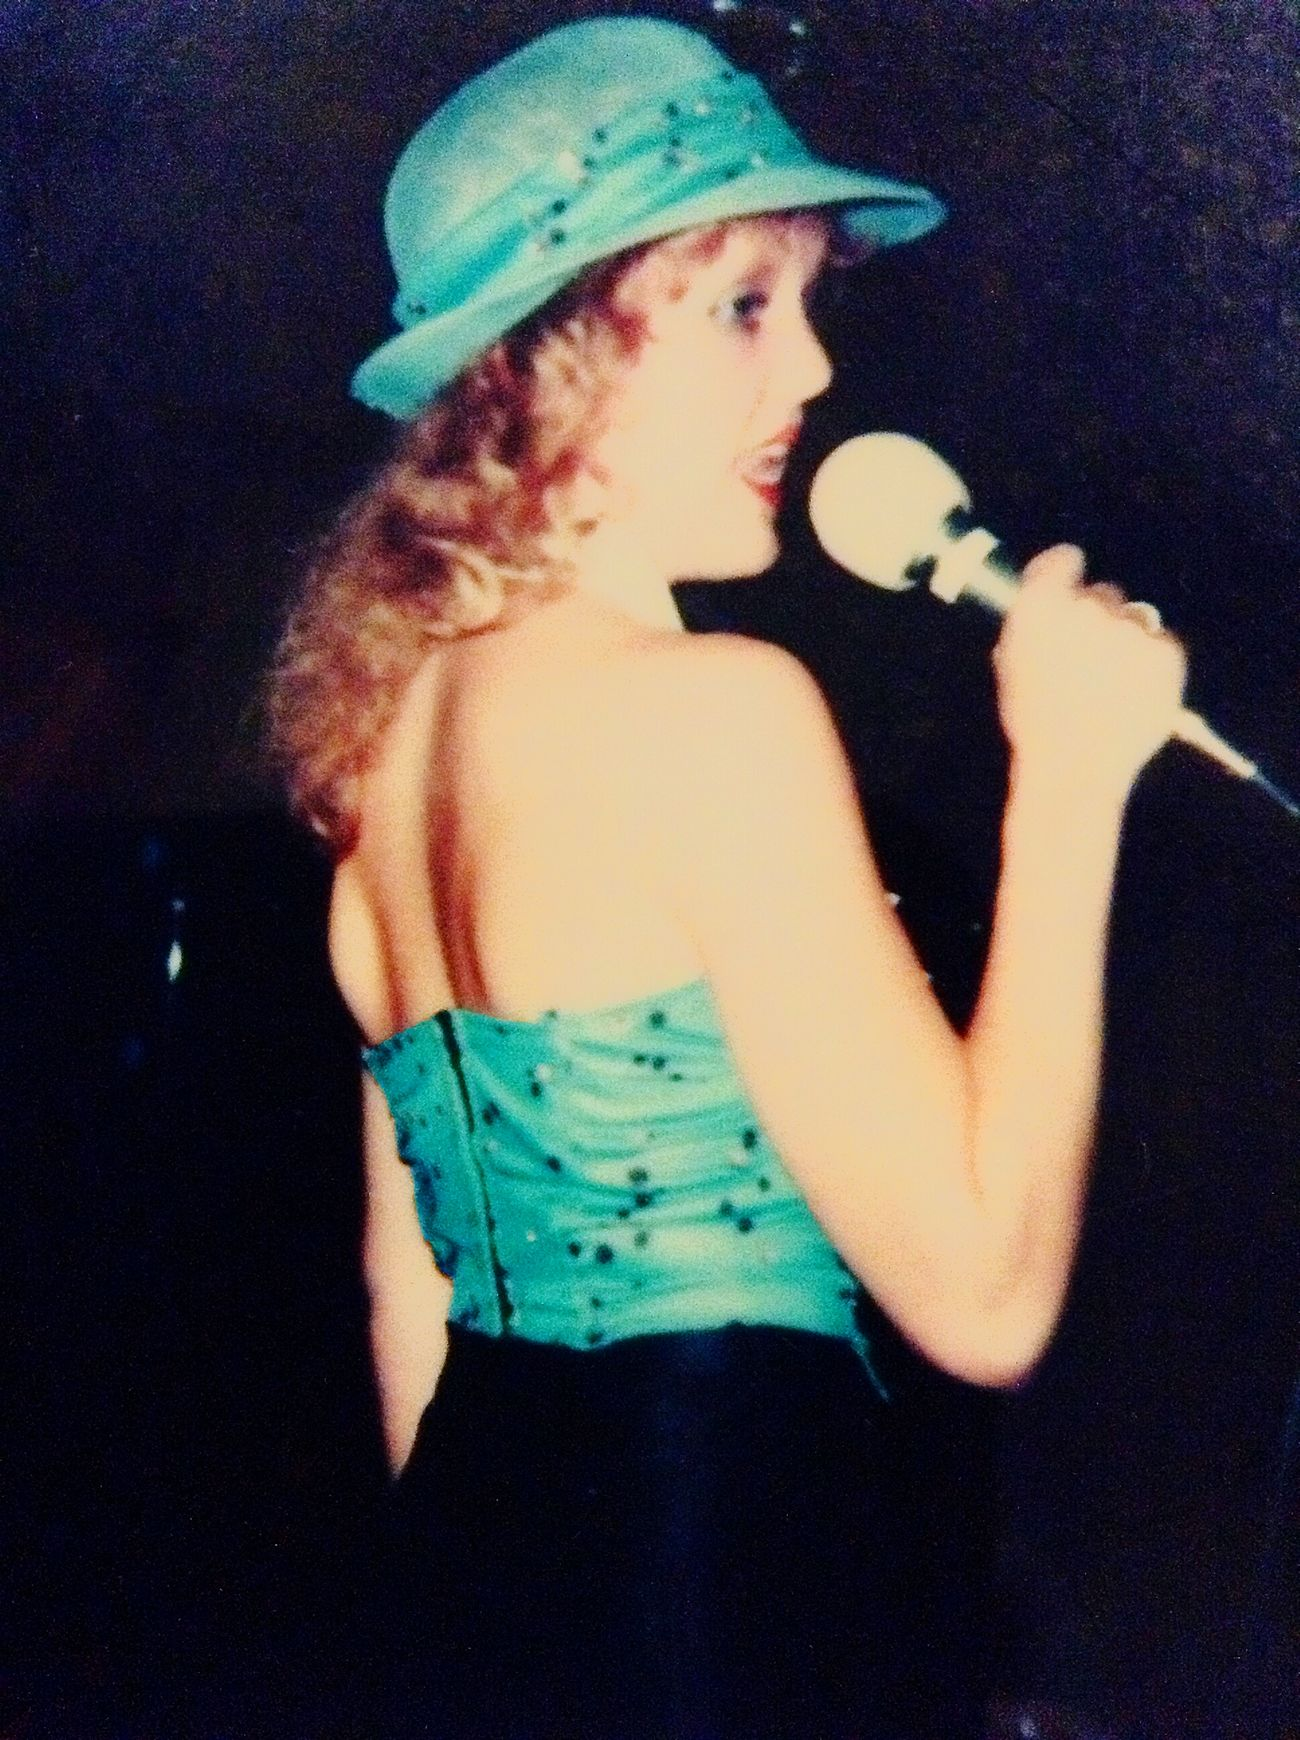 Vintage Thats Me  Singing in a Show Band All-female Band called Motherfunk 1979 I was 19 yrs old